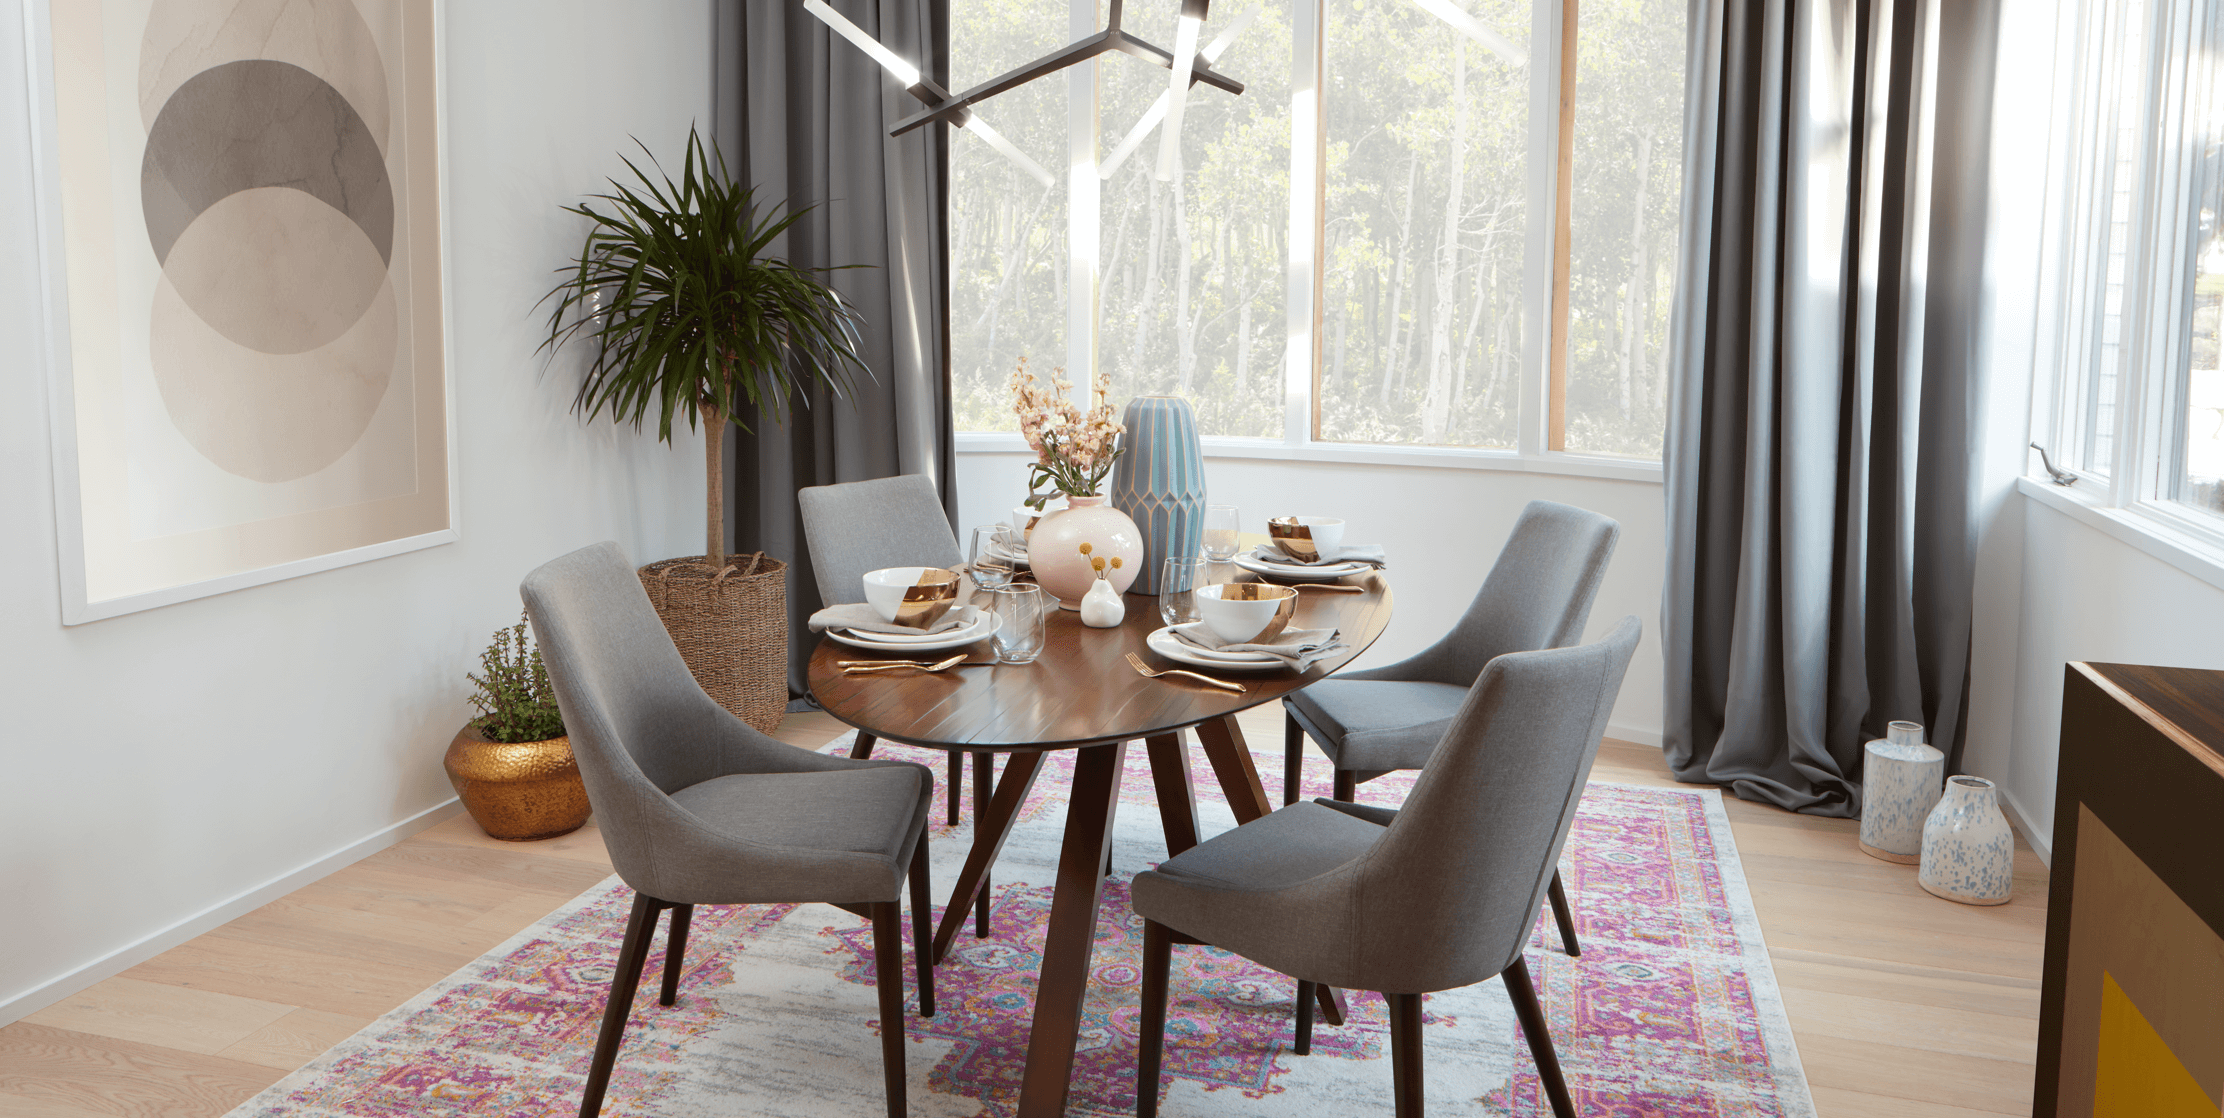 A breakfast nook styled and inspired by interior designer At Home with Ashley